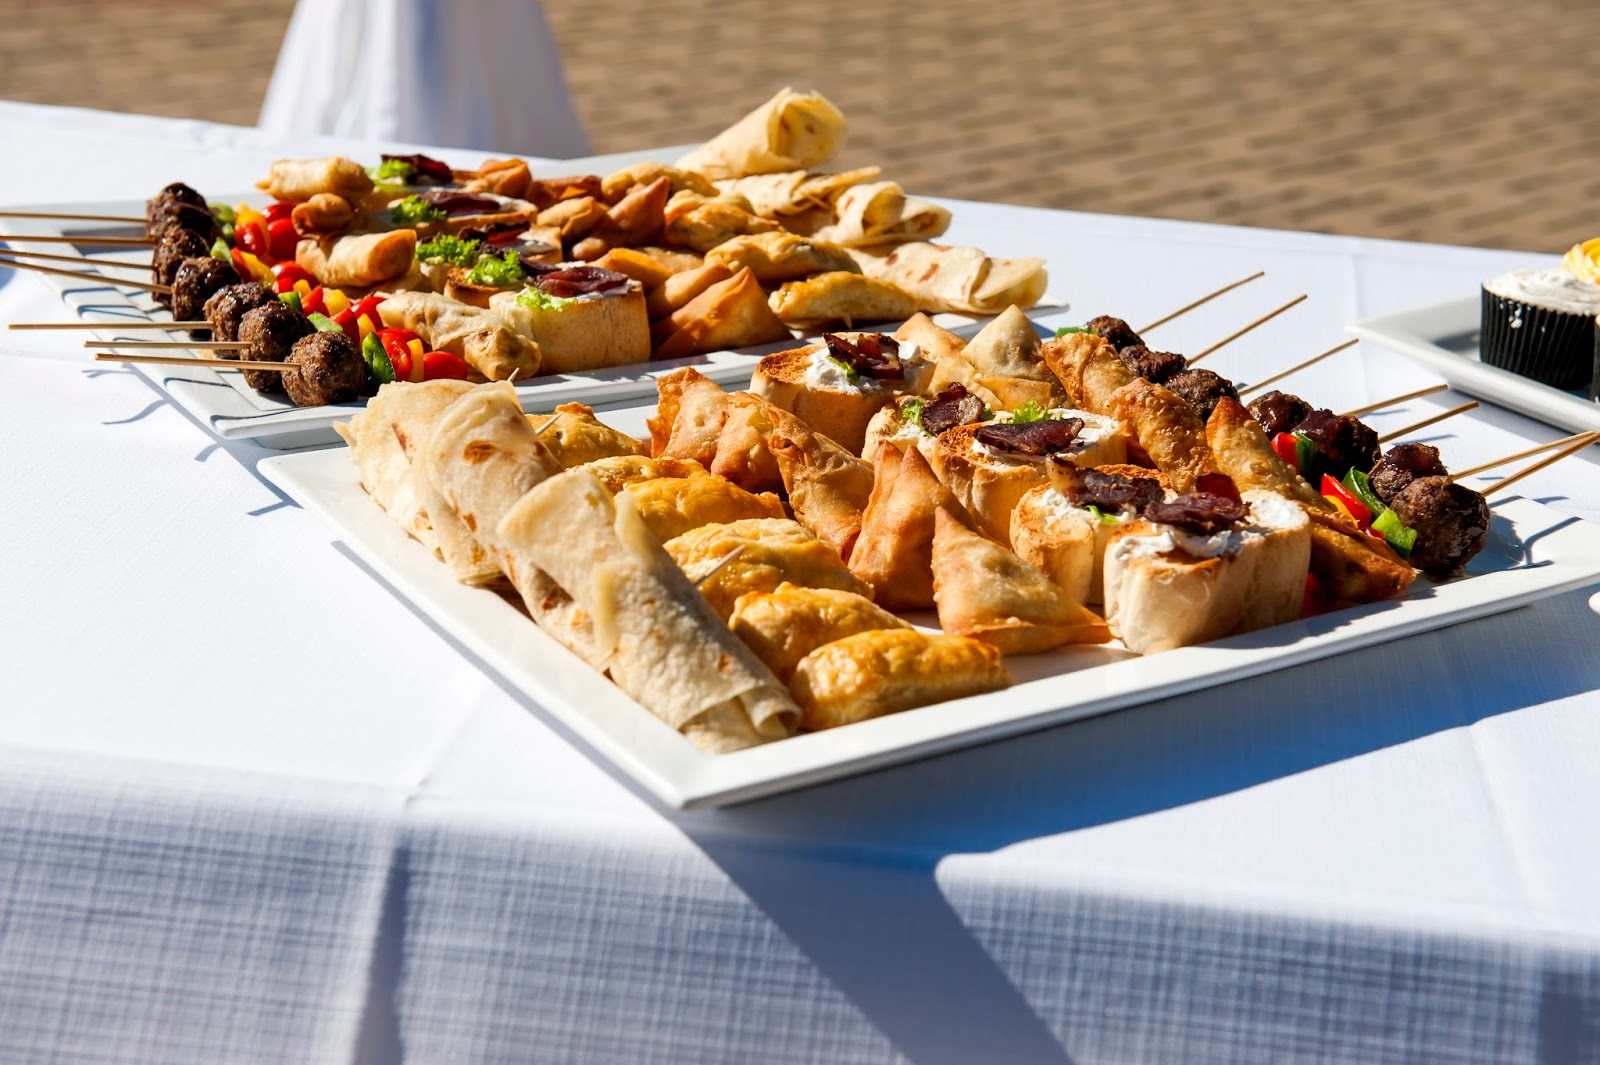 Black carpet events corporate functions catering for Catering companies